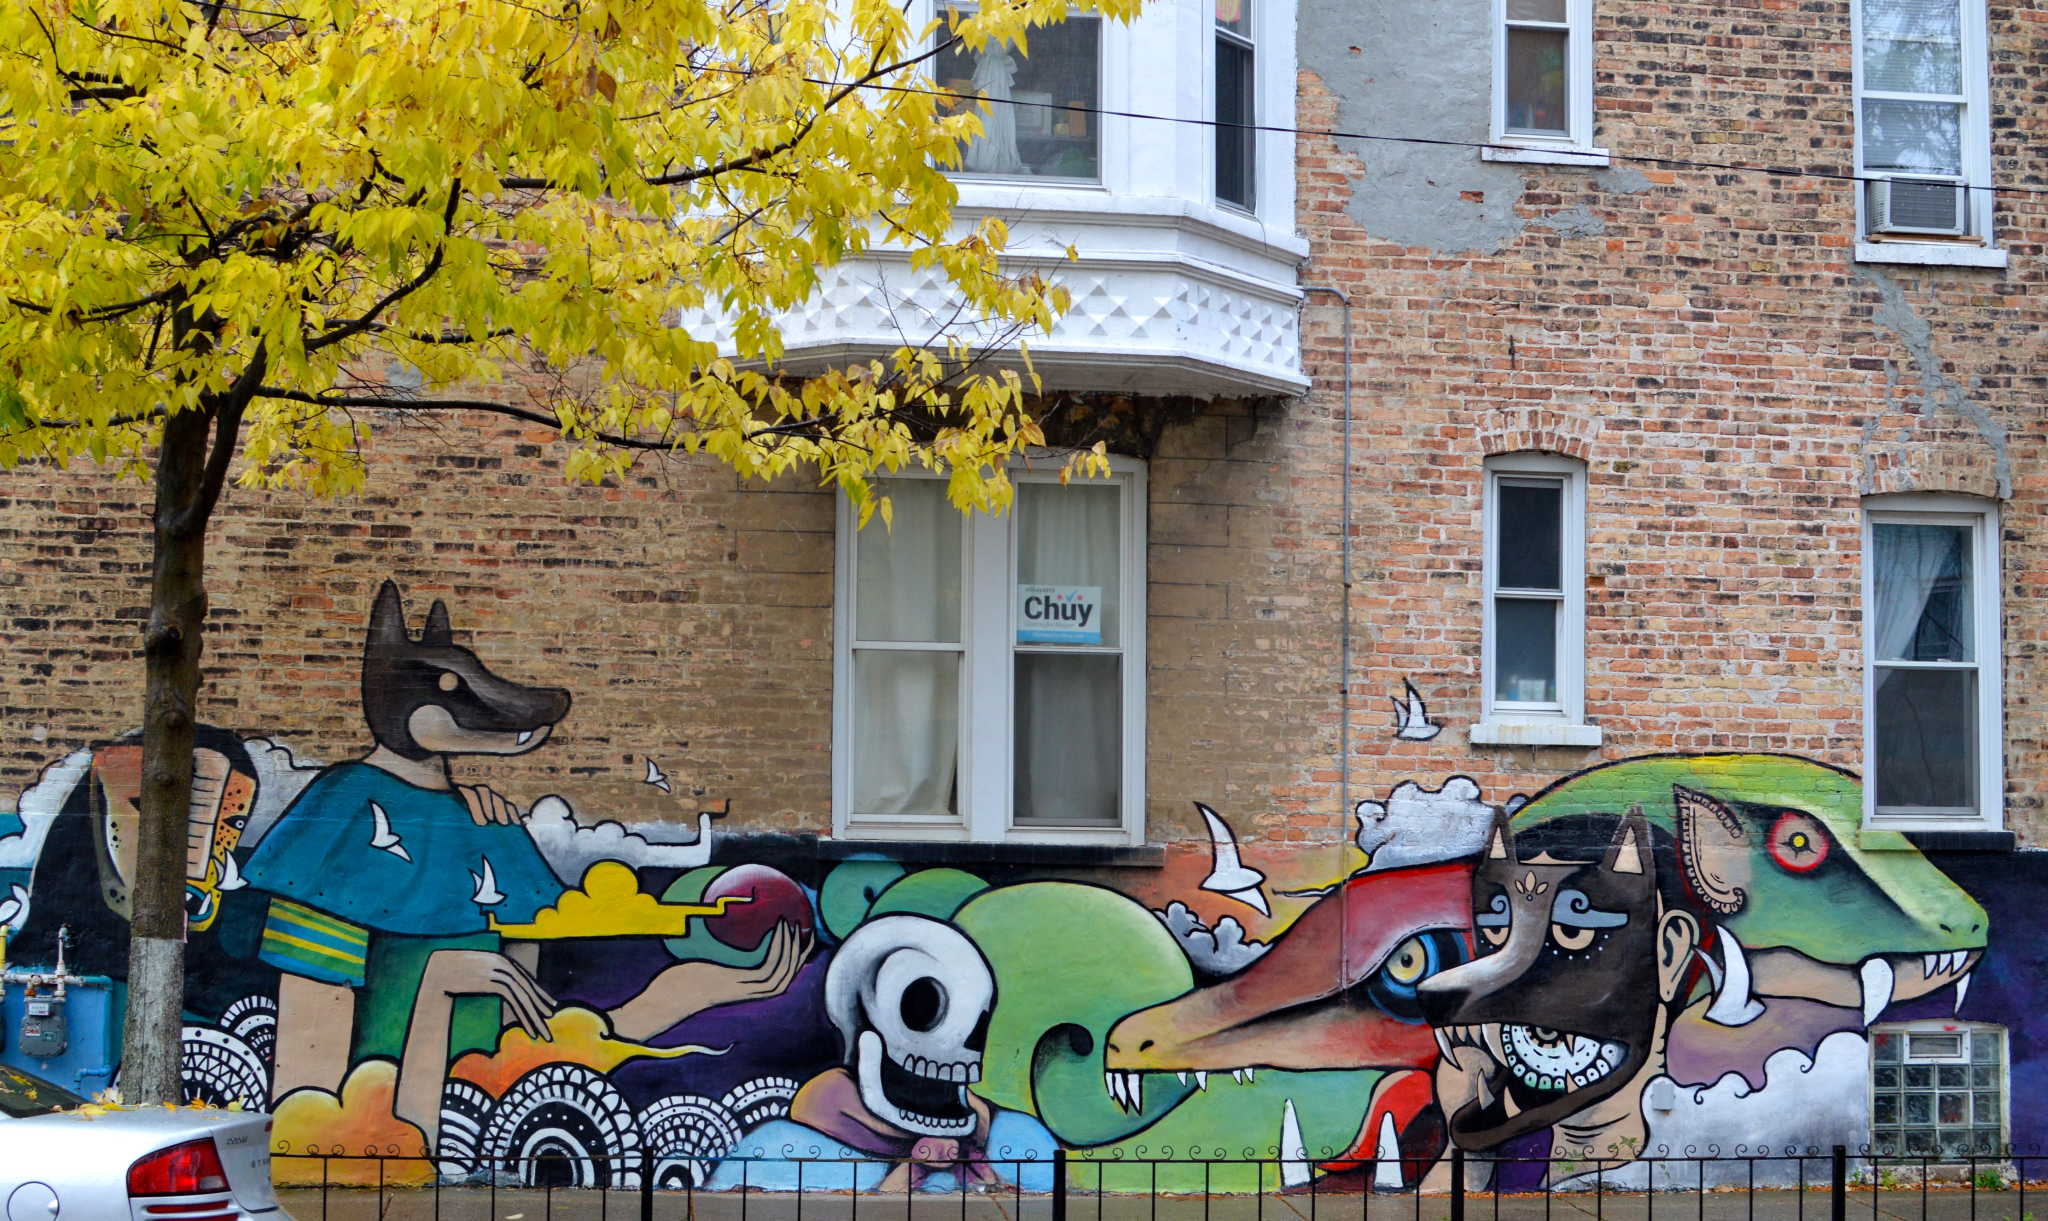 Finding wall space in little village south side weekly